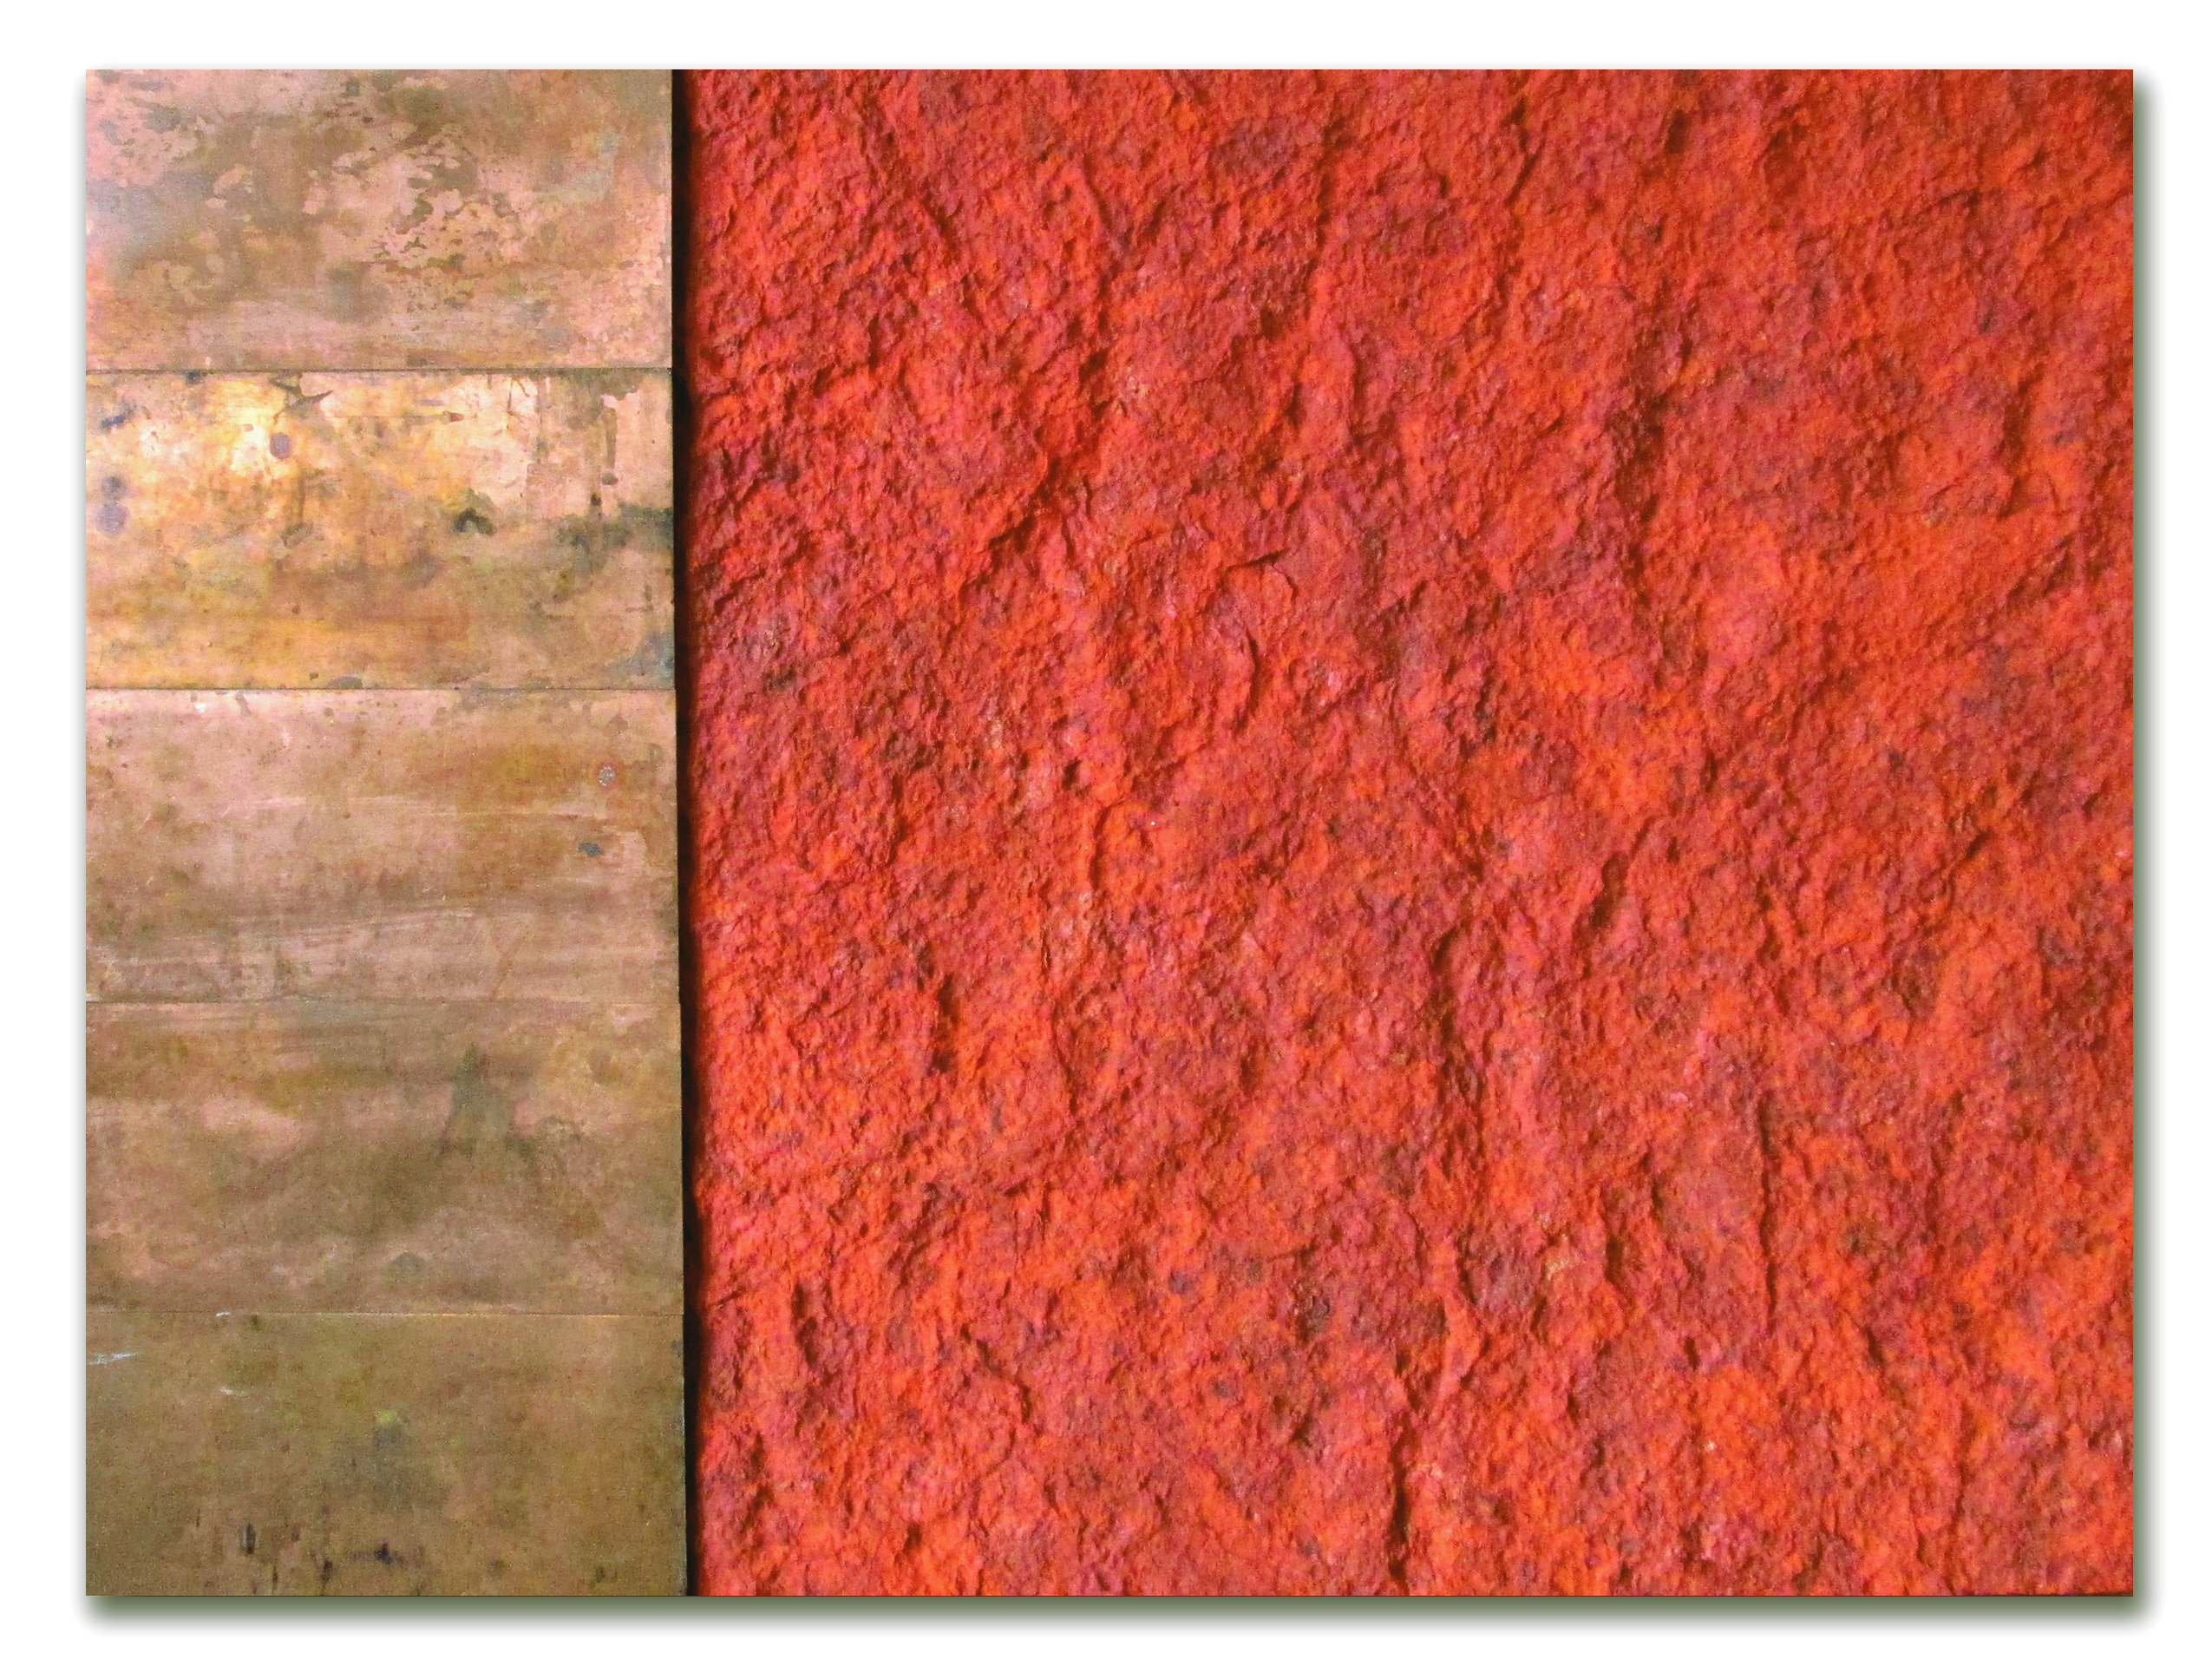 Ellie Winberg_Copper Earth, 30x40, handmade paper with copper plates, patina mounted on canvas